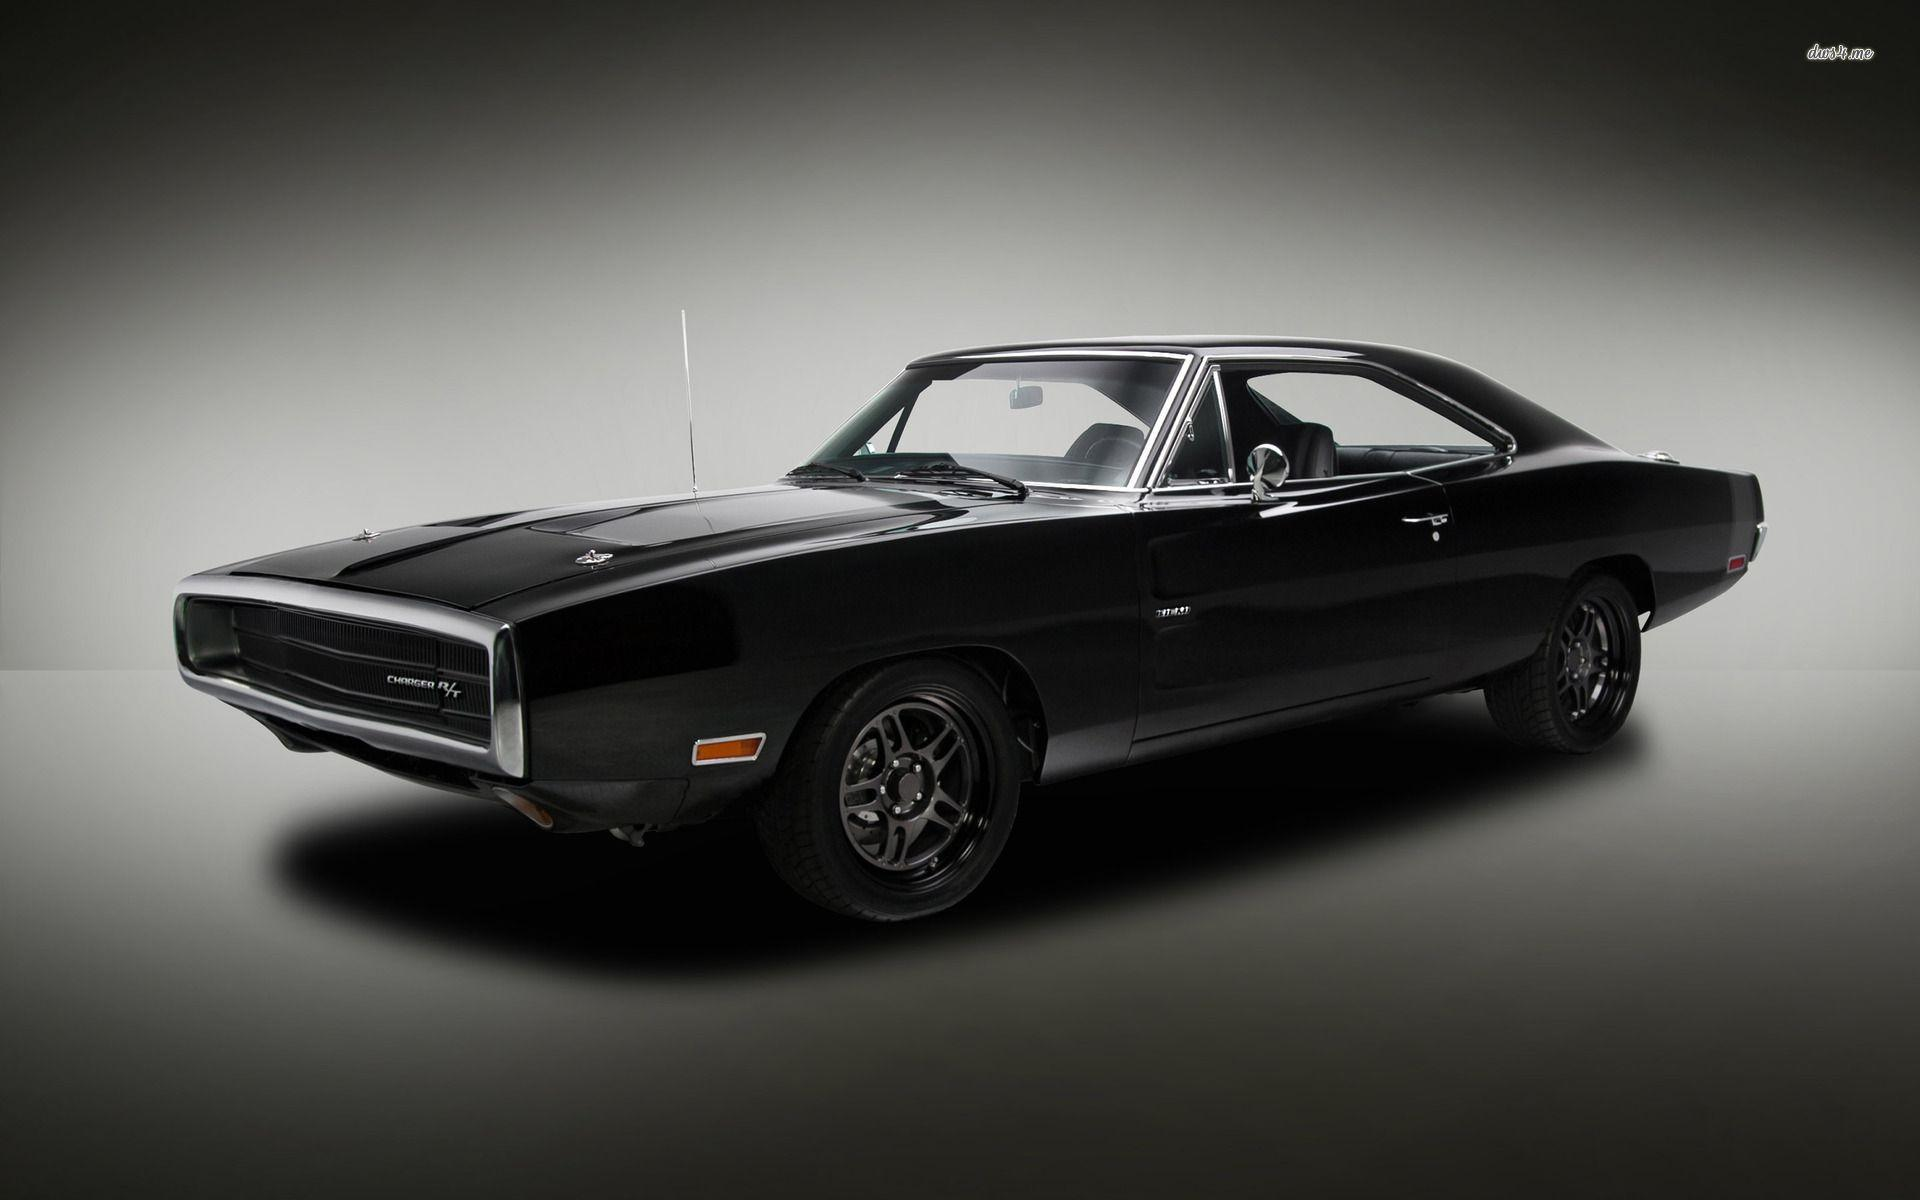 69 Dodge Charger Wallpapers 1920x1200